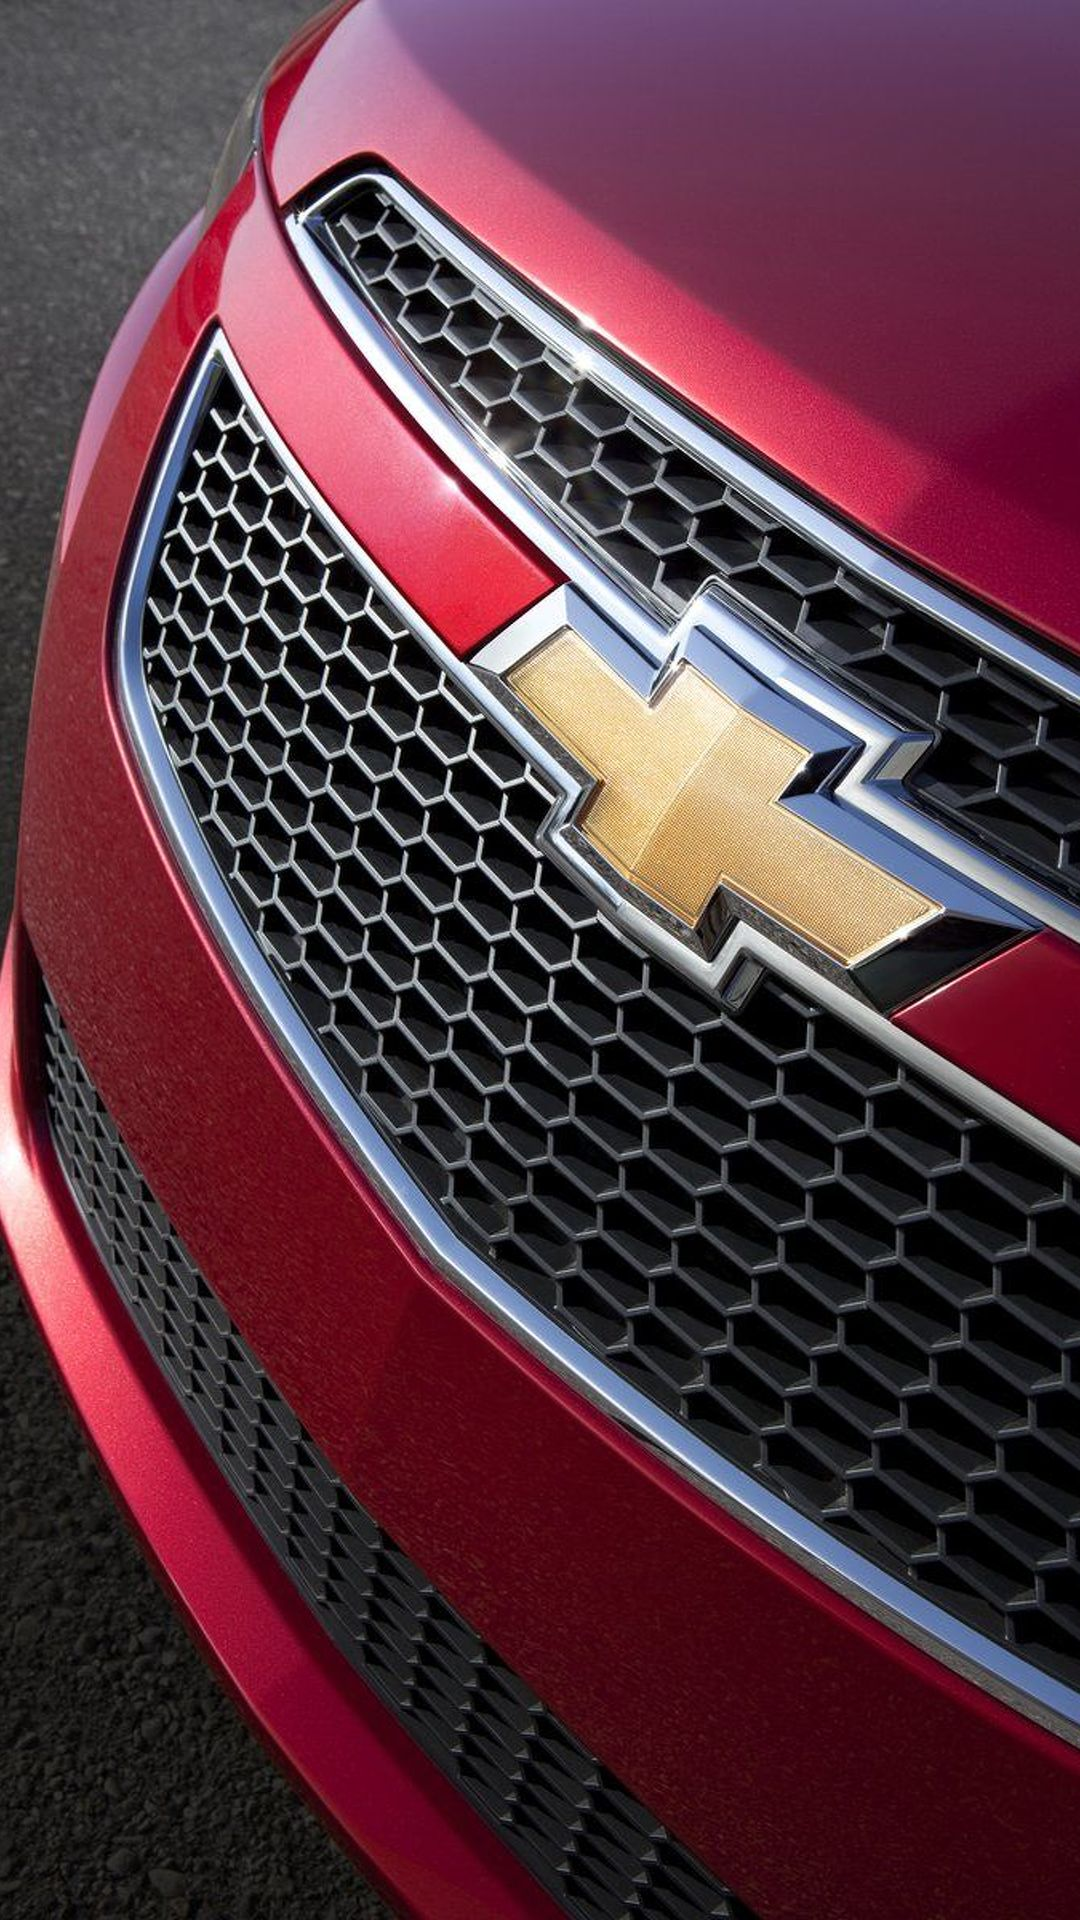 GM wants to build Chevy cars in Europe - and sell 1 million units a year there